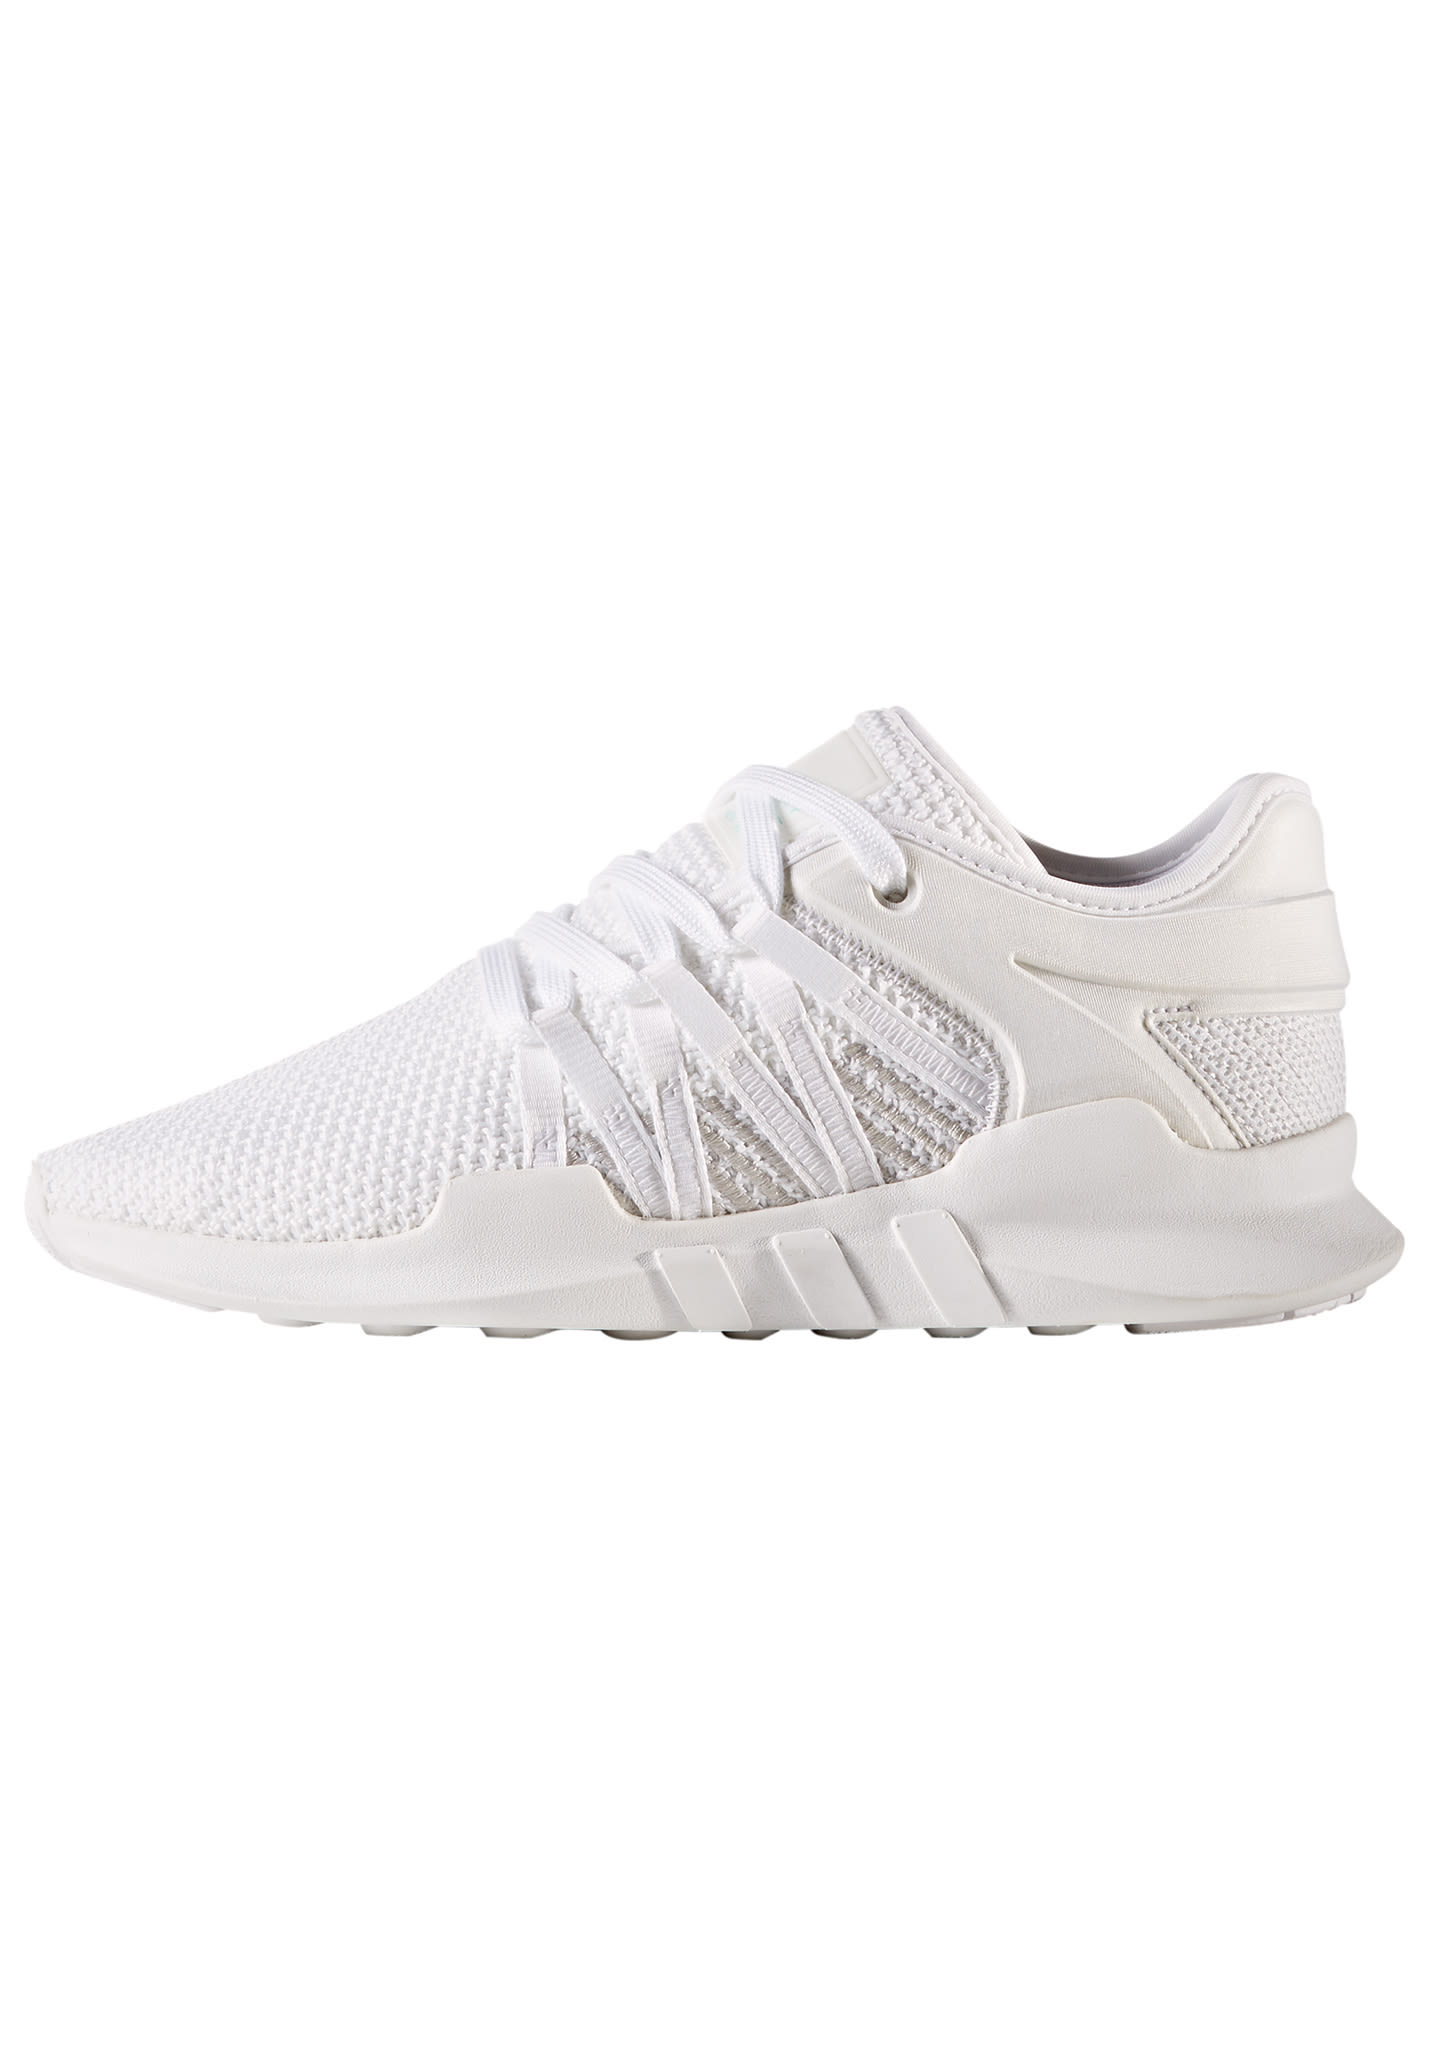 detailed pictures 241b3 6d2e0 ADIDAS ORIGINALS Eqt Racing Adv - Sneaker per Donna - Bianco - Planet Sports